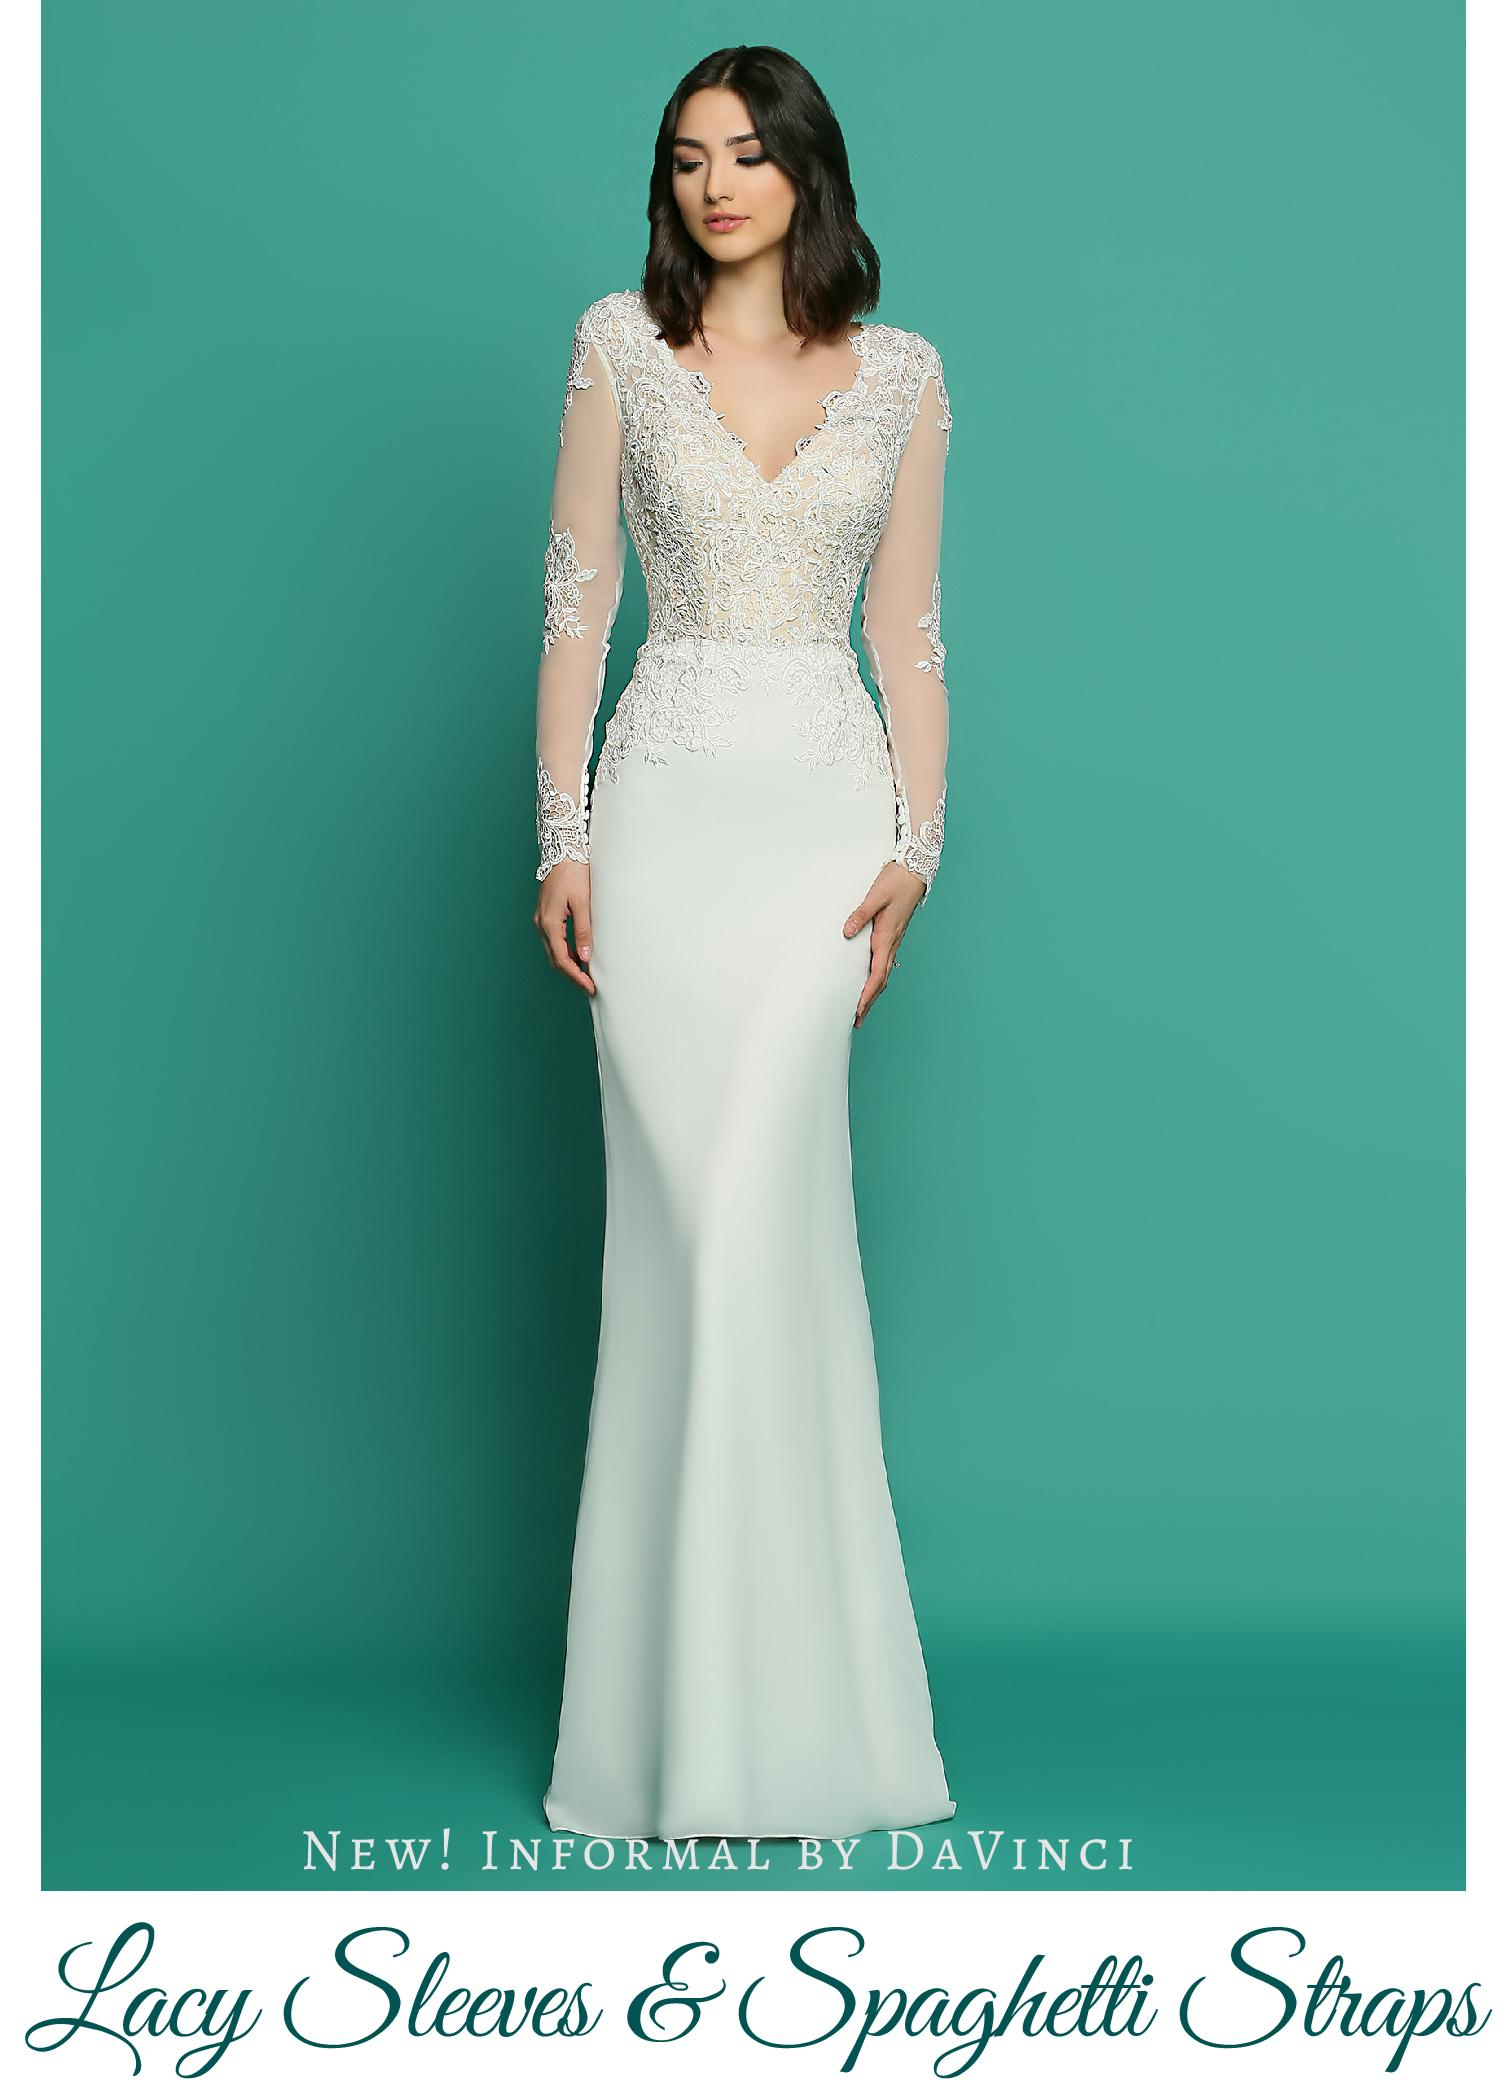 New! Wedding Dresses from Informal by DaVinci: Lacy Sleeves ...